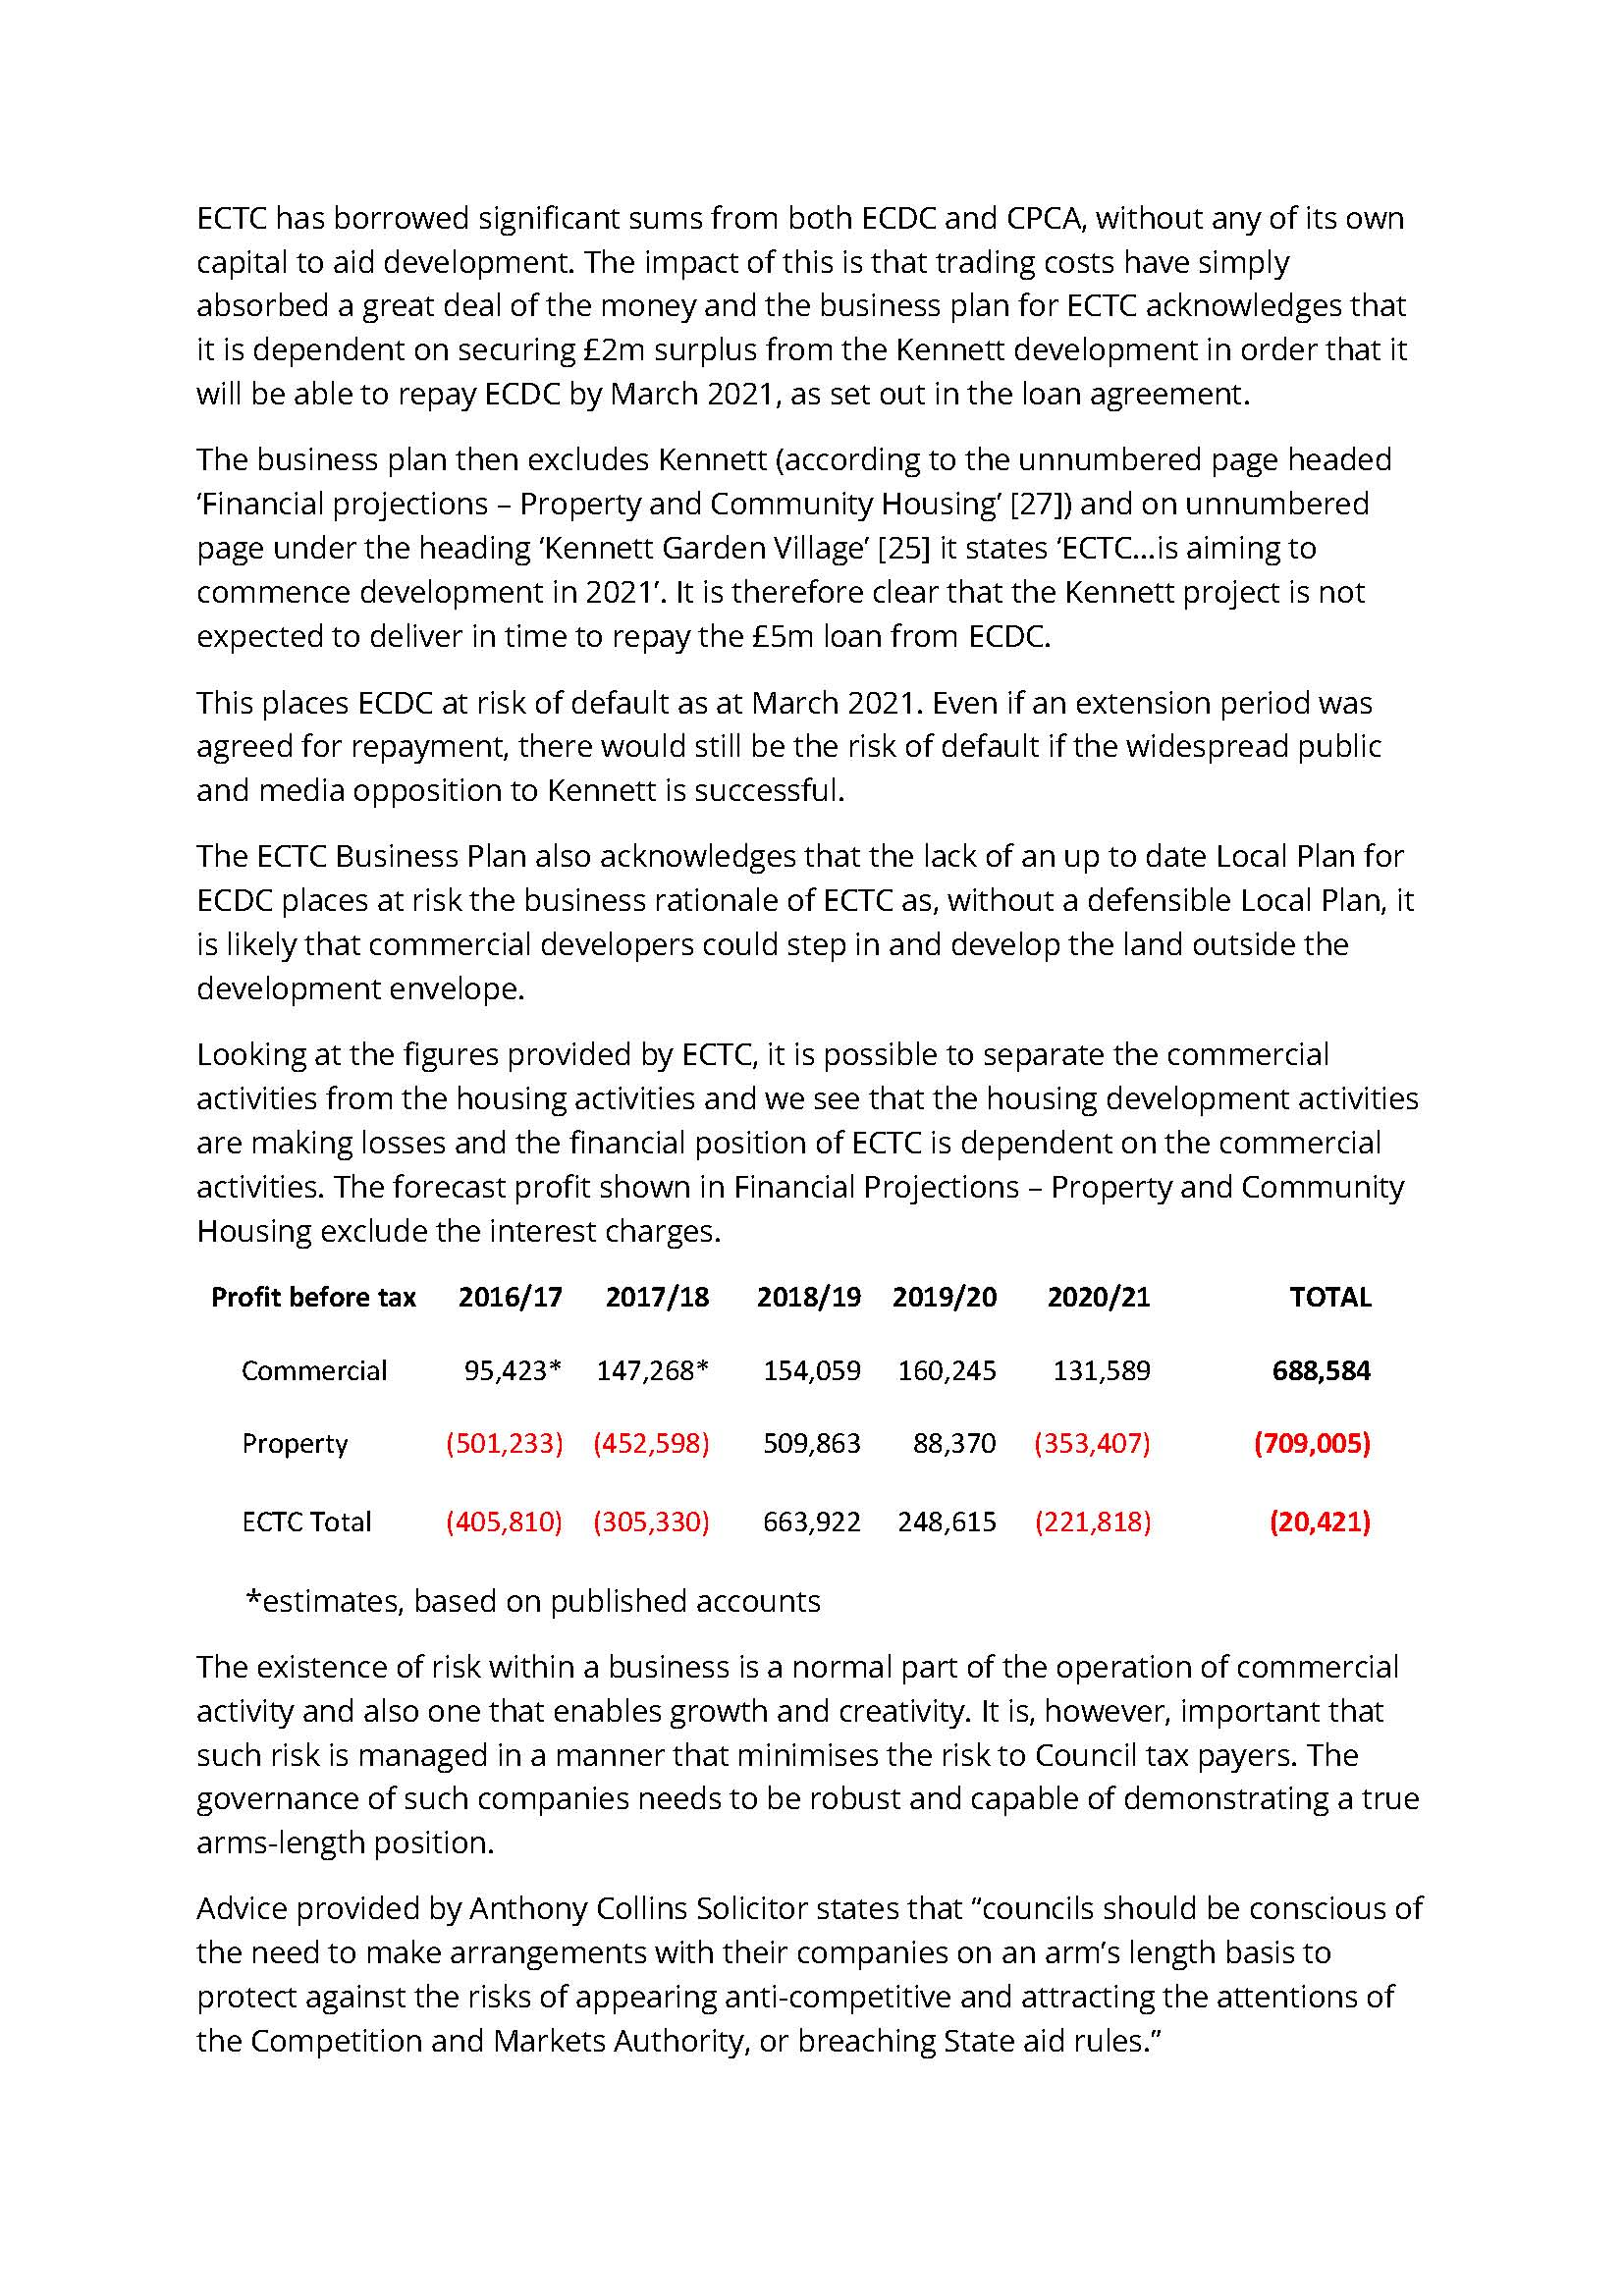 ECTC has borrowed significant sums from both ECDC and CPCA, without any of its own capital to aid development. The impact of this is that trading costs have simply absorbed a great deal of the money and the business plan for ECTC acknowledges that it is dependent on securing £2m surplus from the Kennett development in order that it will be able to repay ECDC by March 2021, as set out in the loan agreement. The business plan then excludes Kennett (according to the unnumbered page headed 'Financial projections – Property and Community Housing' [27]) and on unnumbered page under the heading 'Kennett Garden Village' [25] it states 'ECTC...is aiming to commence development in 2021'. It is therefore clear that the Kennett project is not expected to deliver in time to repay the £5m loan from ECDC. This places ECDC at risk of default as at March 2021. Even if an extension period was agreed for repayment, there would still be the risk of default if the widespread public and media opposition to Kennett is successful. The ECTC Business Plan also acknowledges that the lack of an up to date Local Plan for ECDC places at risk the business rationale of ECTC as, without a defensible Local Plan, it is likely that commercial developers could step in and develop the land outside the development envelope. Looking at the figures provided by ECTC, it is possible to separate the commercial activities from the housing activities and we see that the housing development activities are making losses and the financial position of ECTC is dependent on the commercial activities. The forecast profit shown in Financial Projections – Property and Community Housing exclude the interest charges. Profit before tax 2016/17 2017/18 2018/19 2019/20 2020/21 TOTAL Commercial 95,423* 147,268* 154,059 160,245 131,589 688,584 Property (501,233) (452,598) 509,863 88,370 (353,407) (709,005) ECTC Total (405,810) (305,330) 663,922 248,615 (221,818) (20,421) *estimates, based on published accounts The existence of